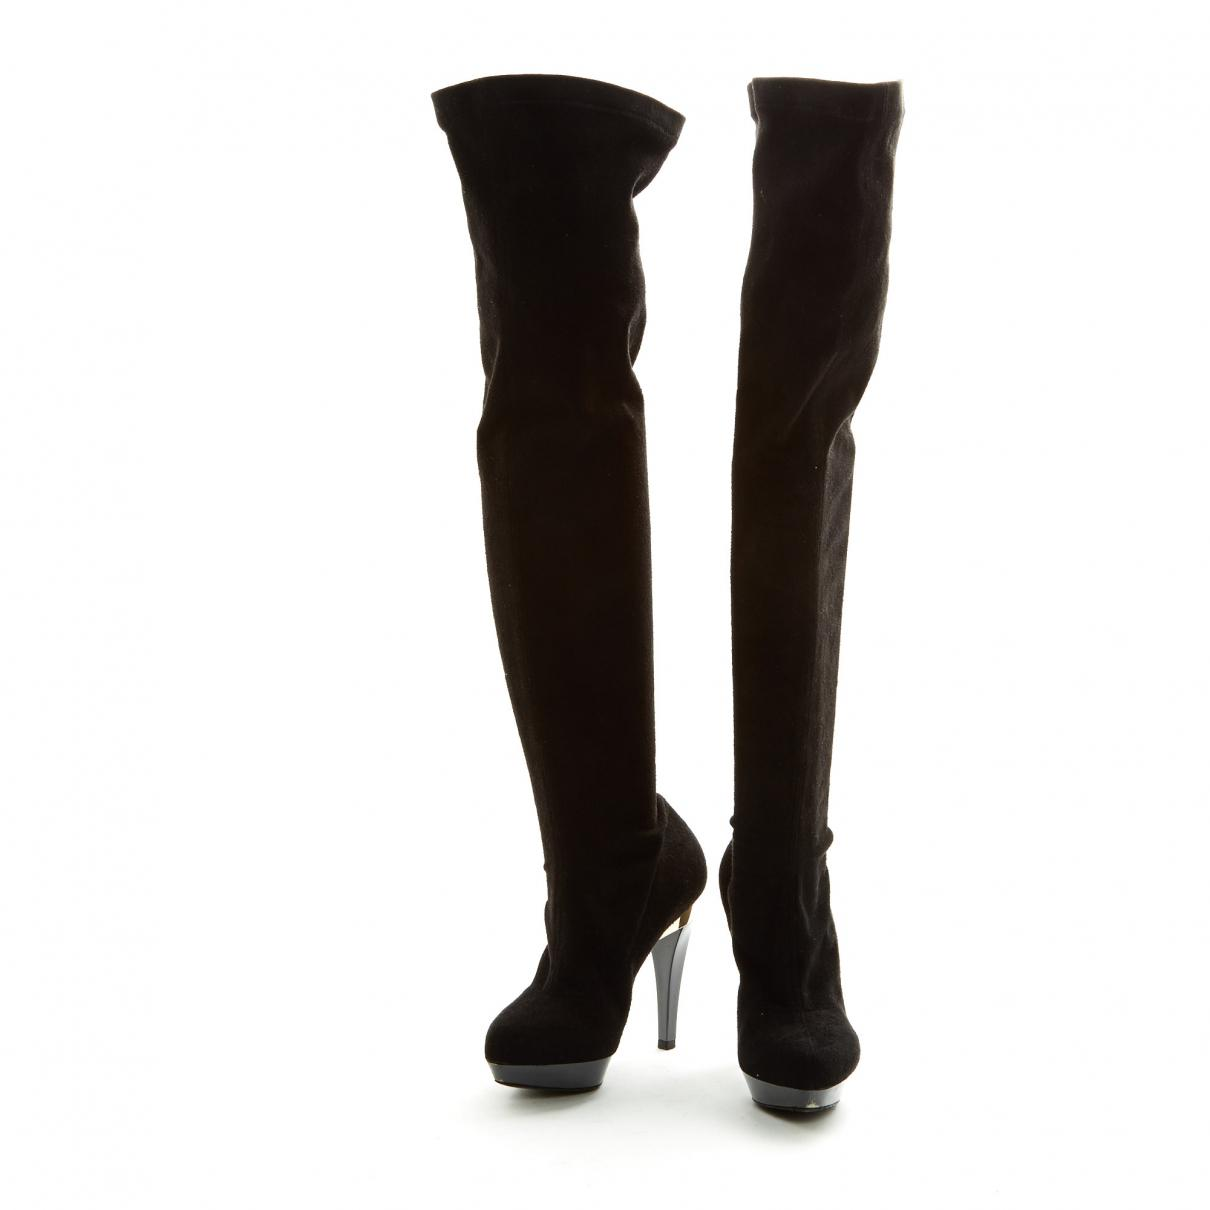 a9b5cfd02c5 Stella McCartney - Black Suede Boot - Lyst. View fullscreen